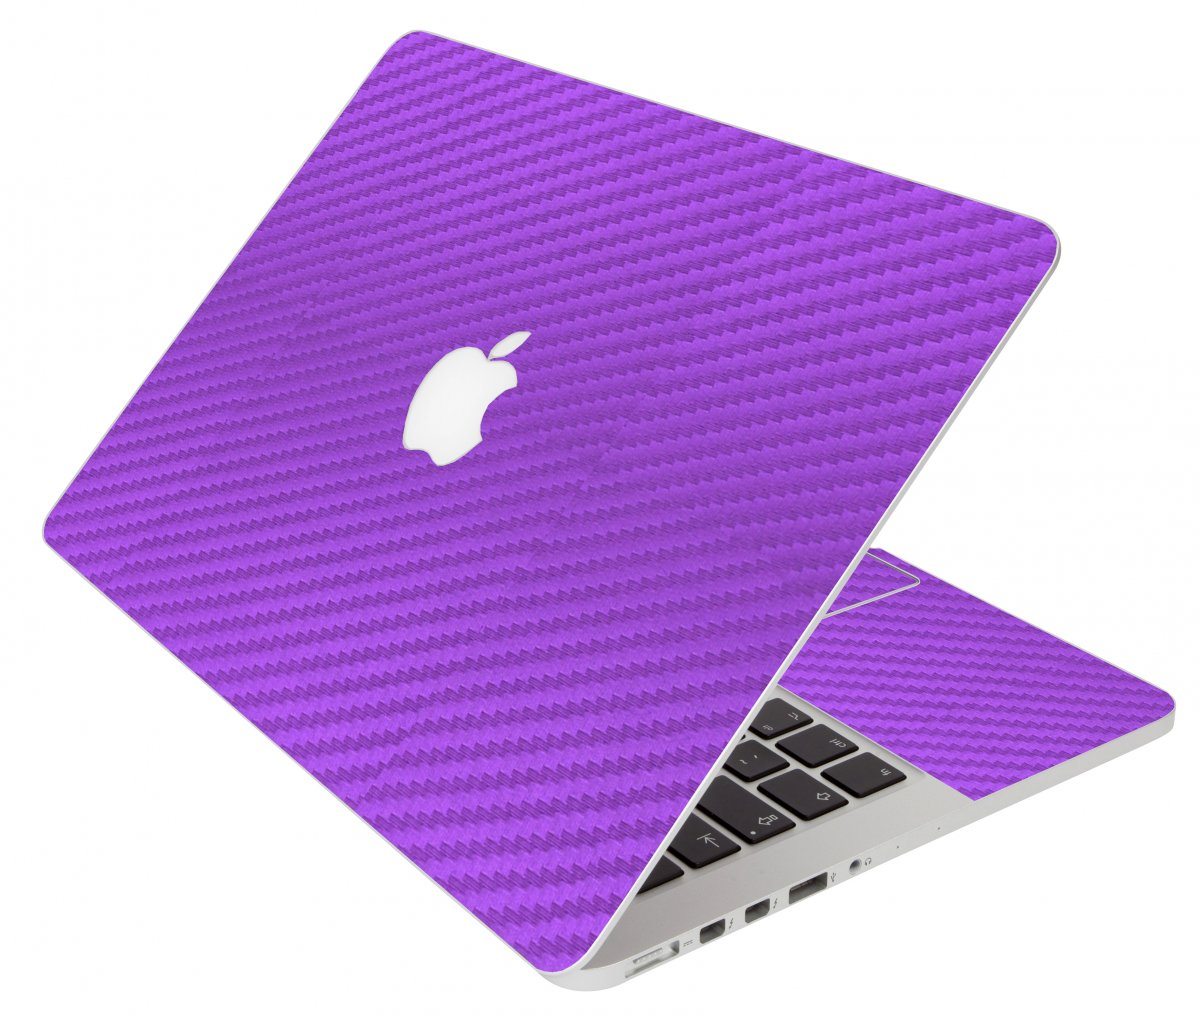 Purple Carbon Fiber Apple Macbook Pro 17 A1297 Laptop  Skin